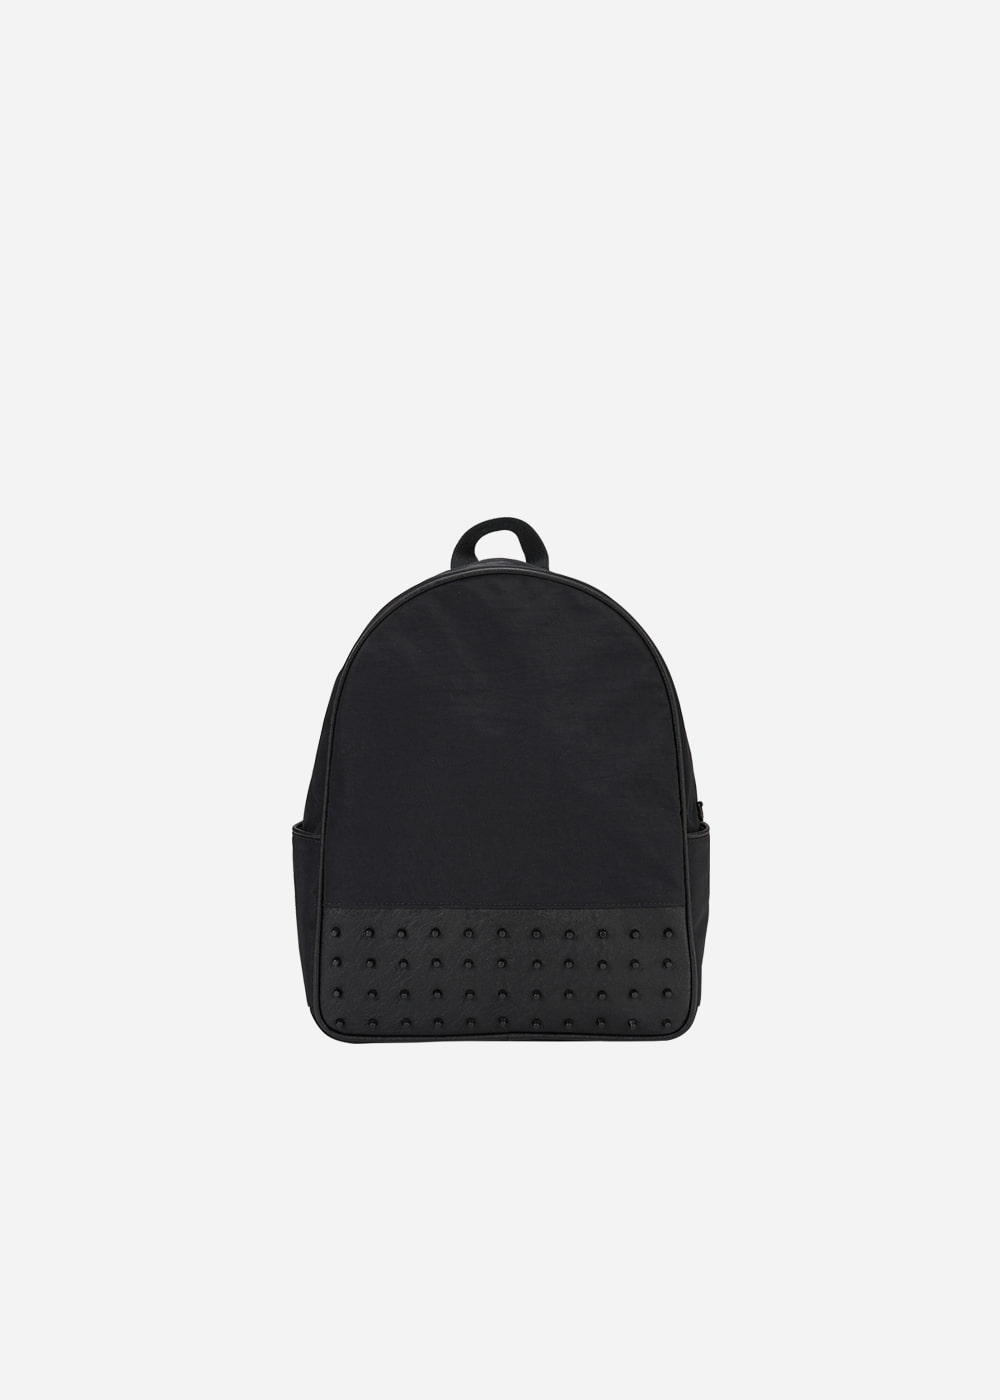 Black Studs Classic Backpack Small